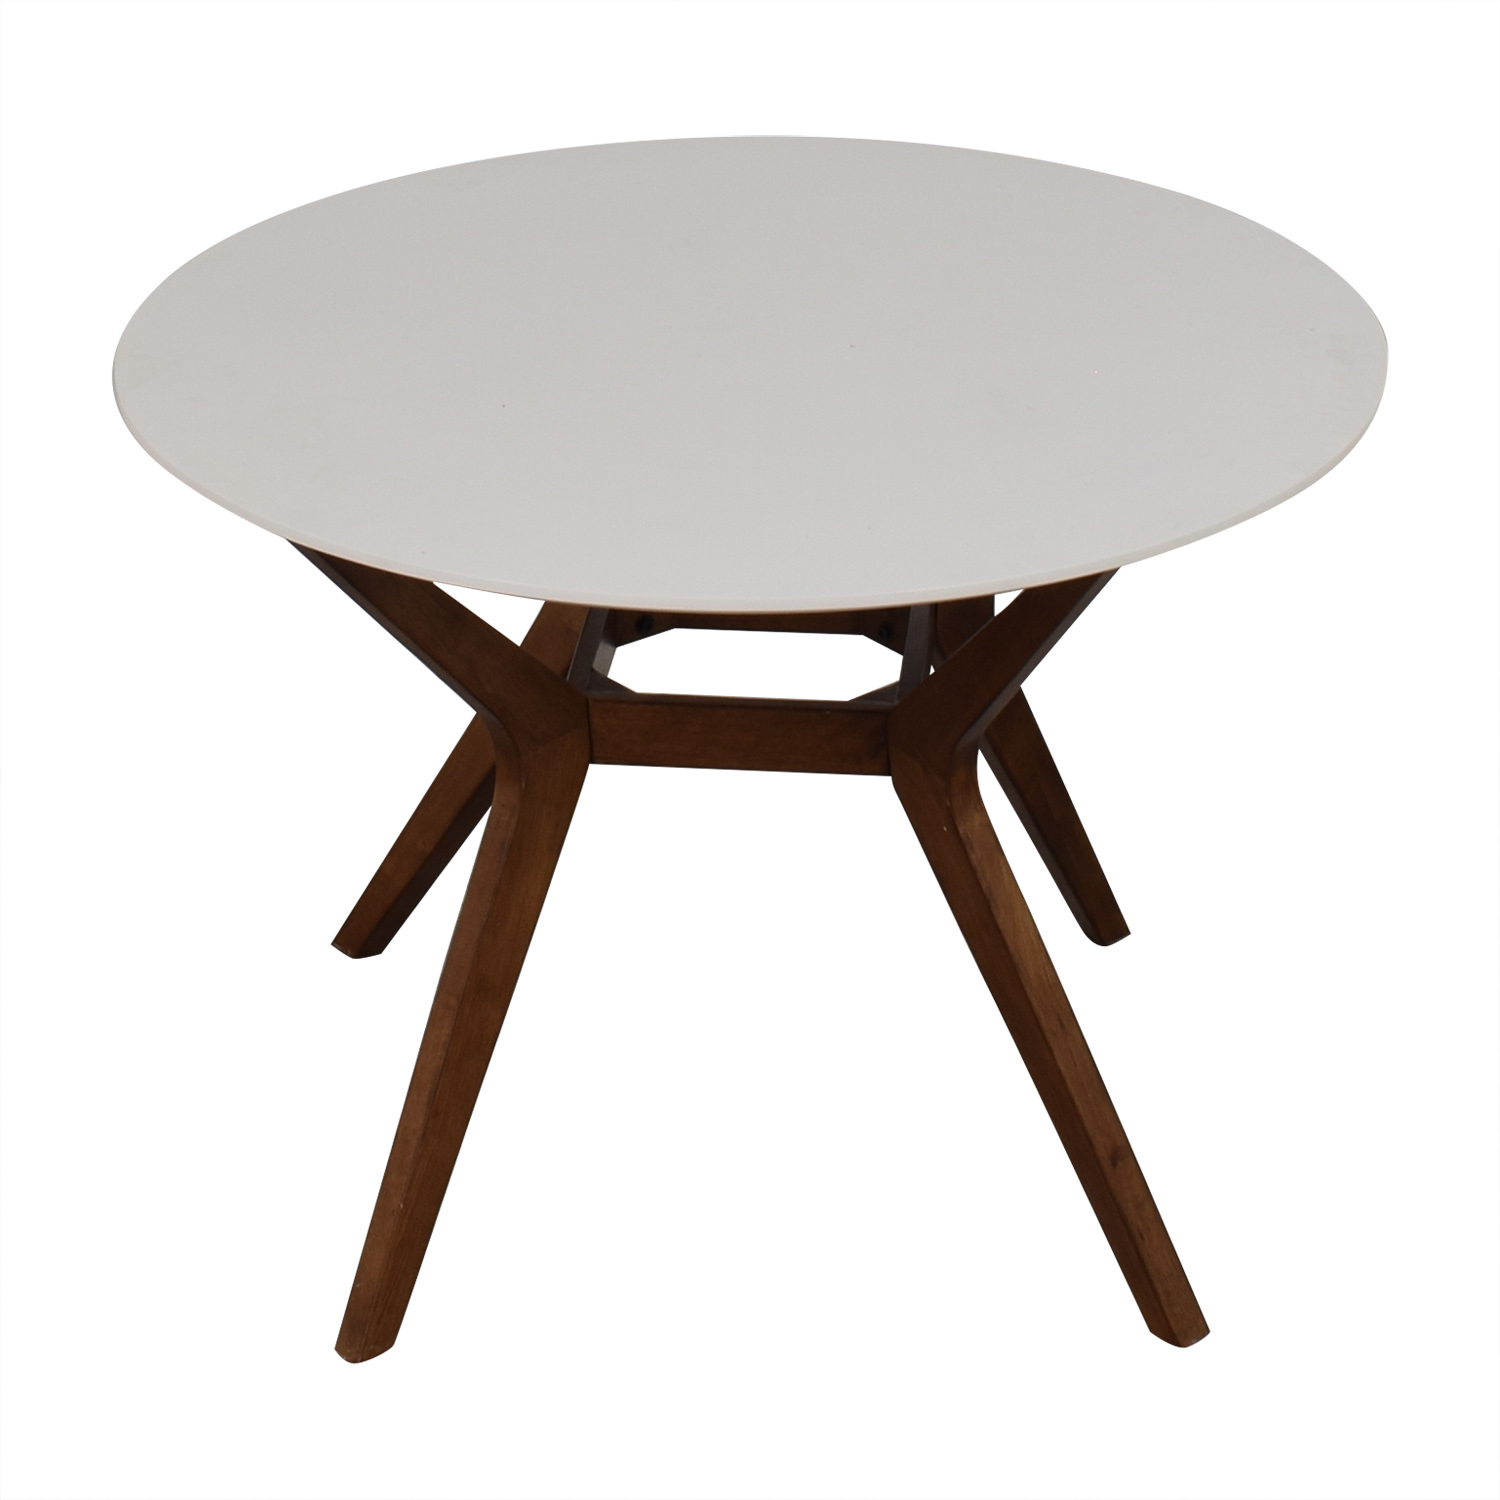 Project 62 by Target White Wooden Dining Table Project 62 by Target